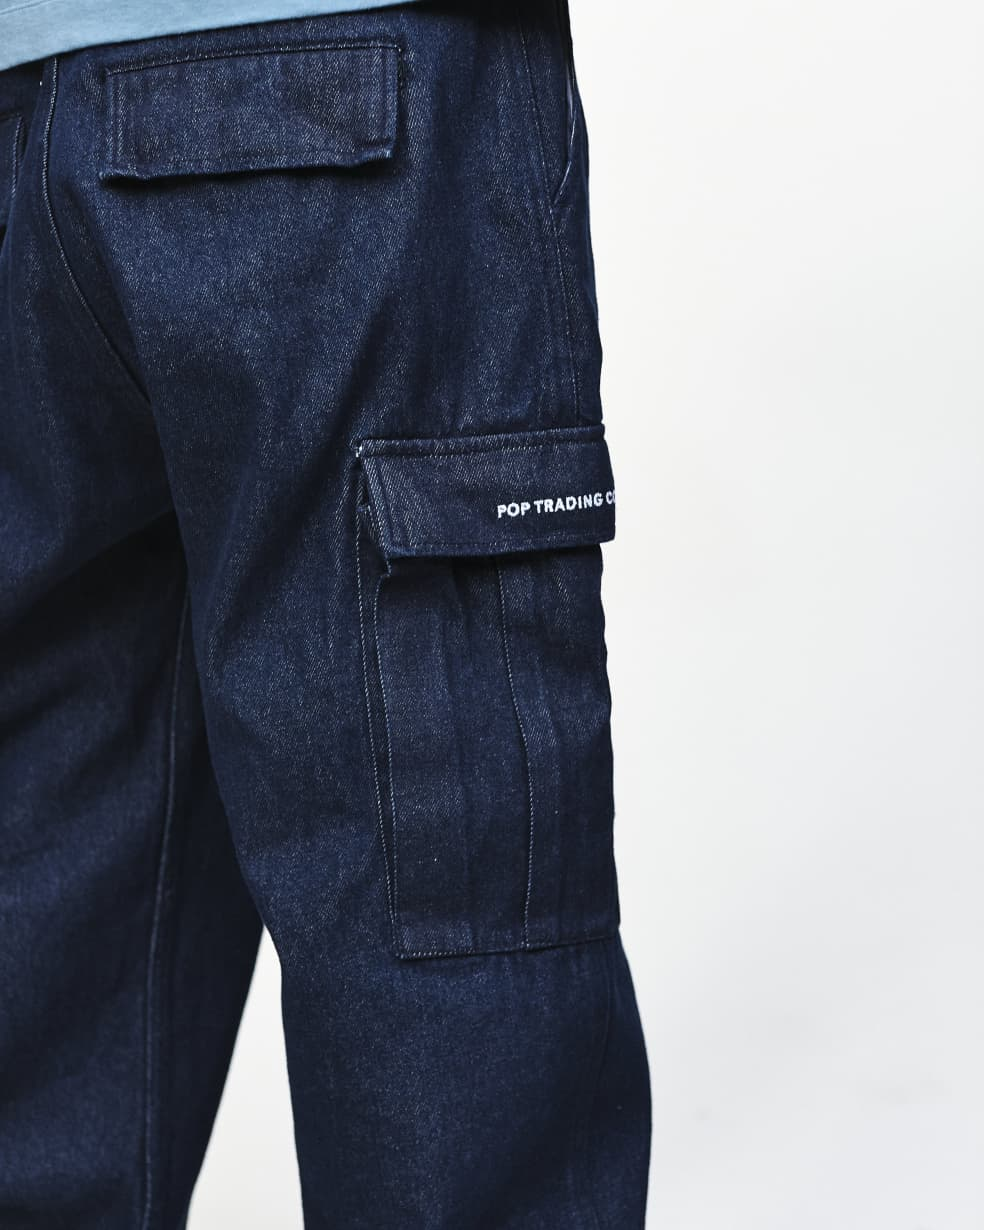 Pop Trading Company Denim Cargo Pants - Rinsed   Trousers by Pop Trading Company 3